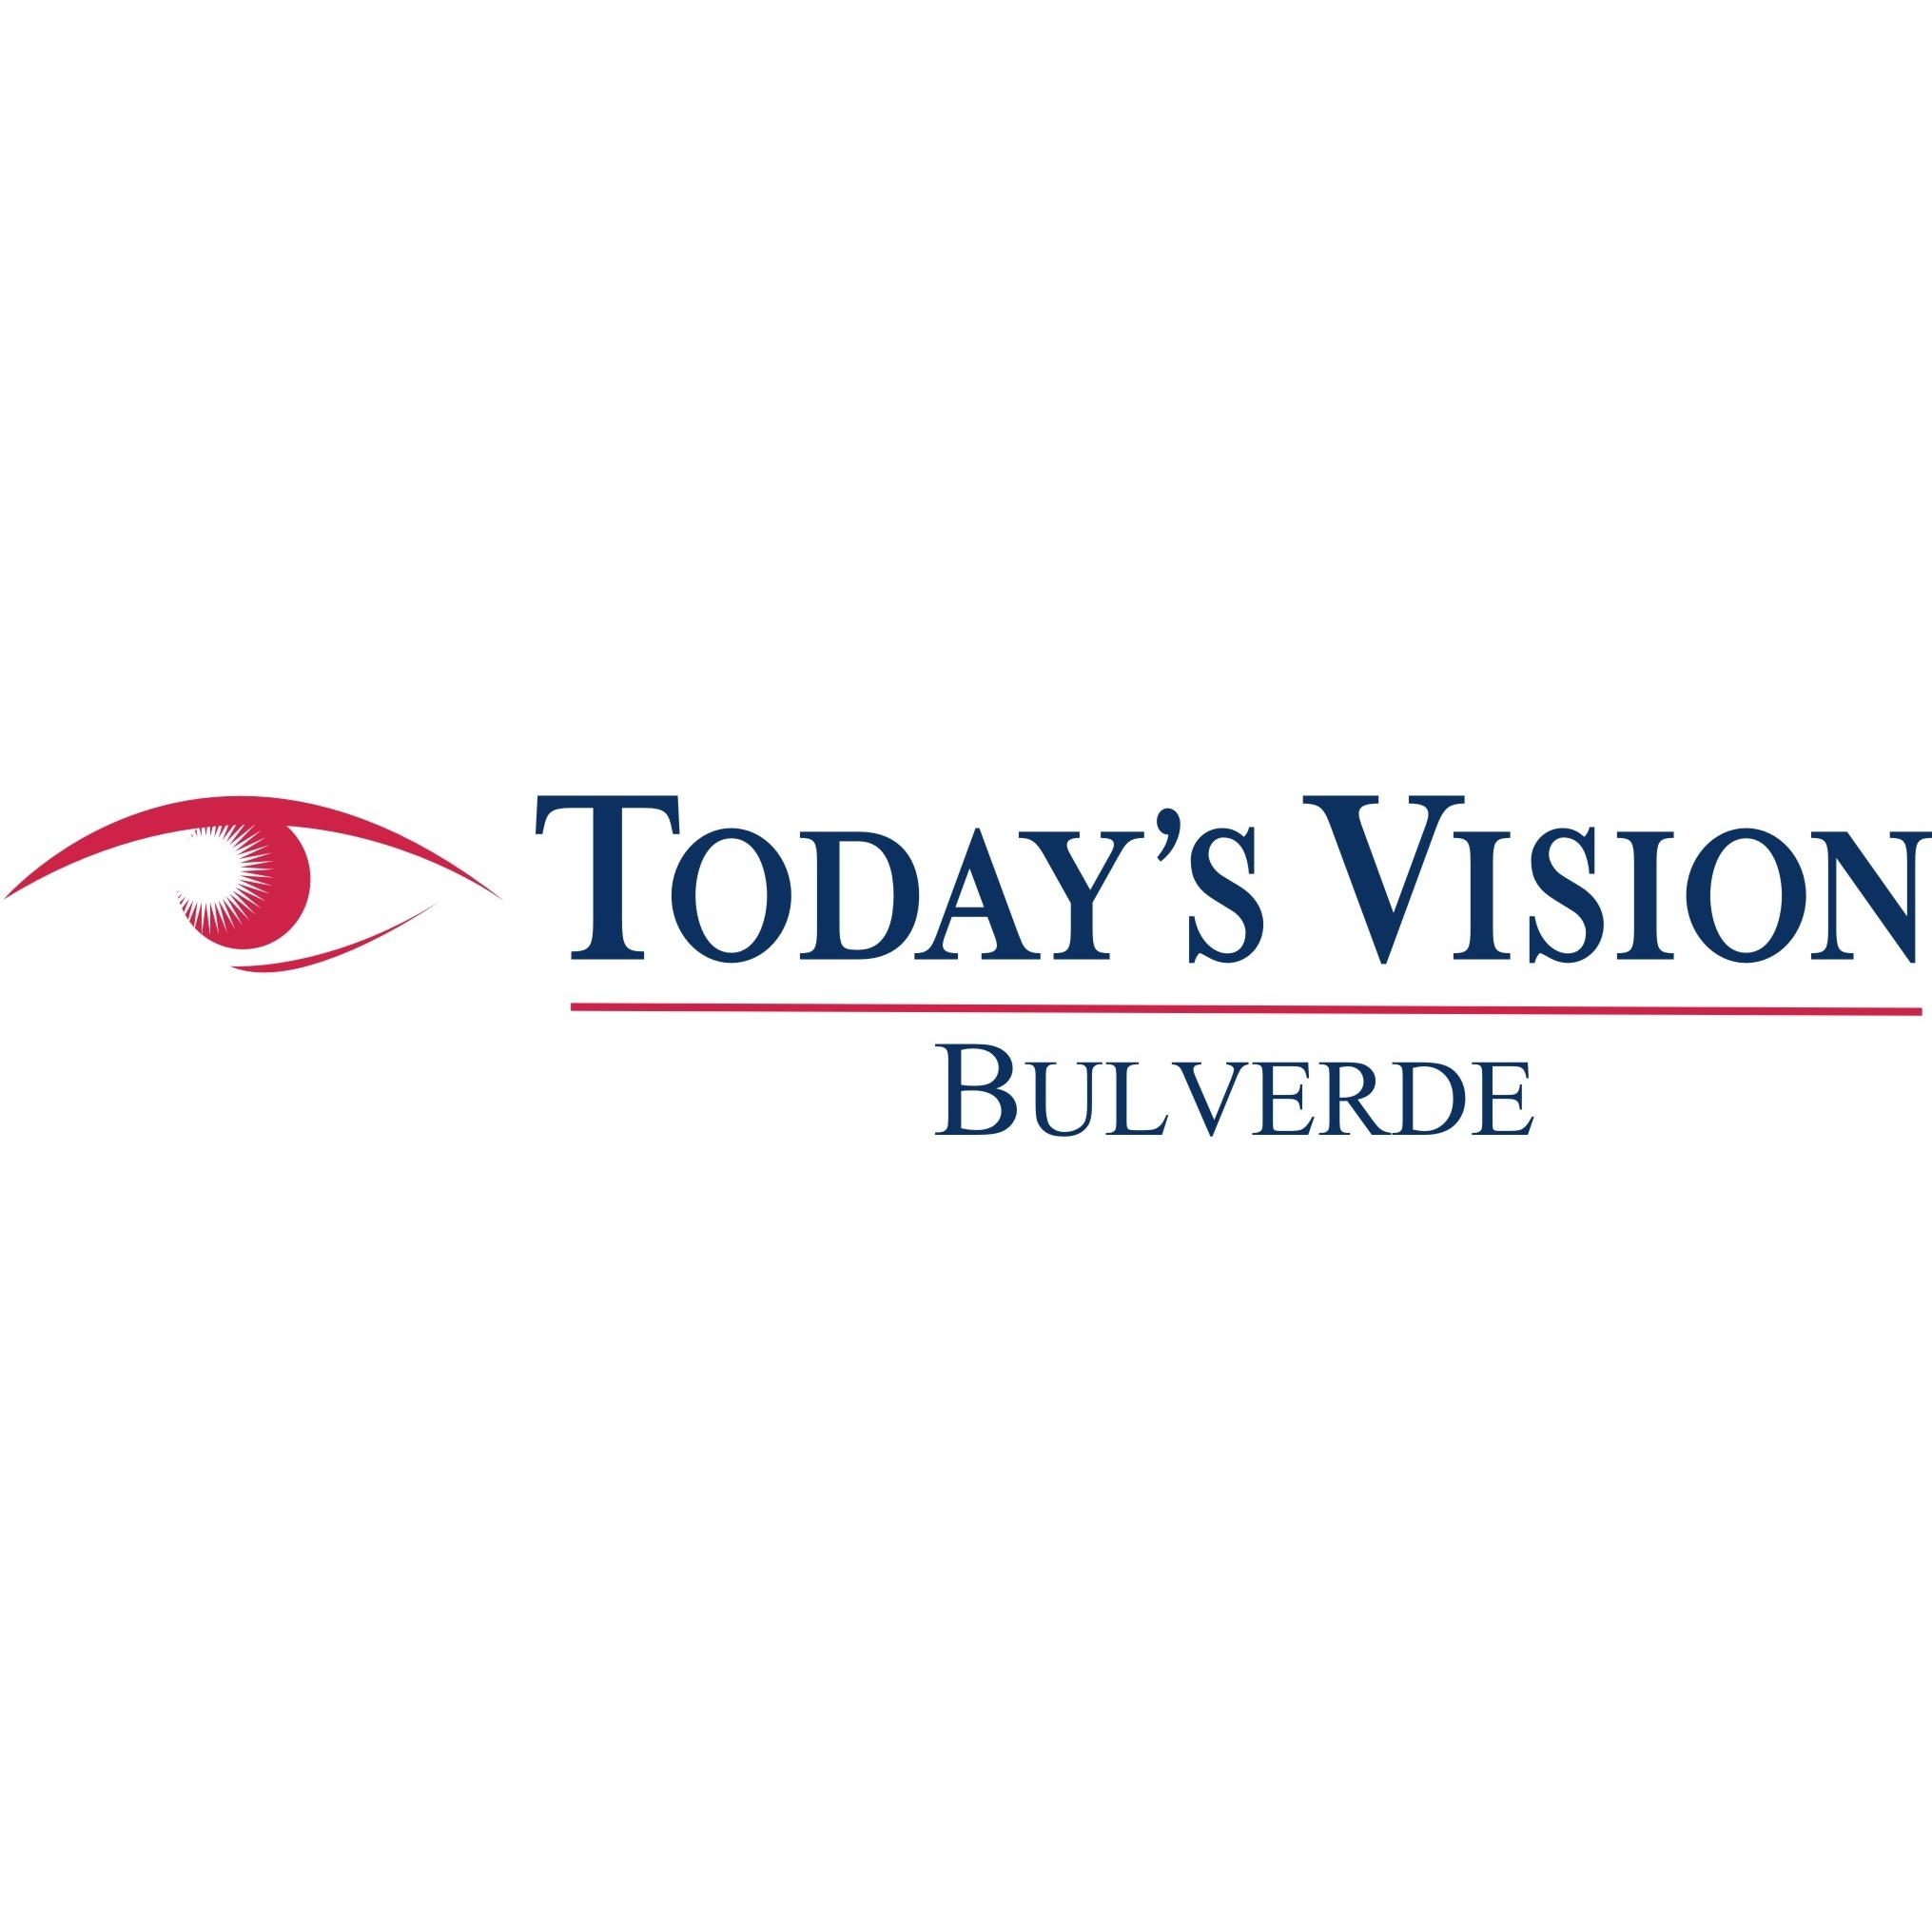 Today's Vision Bulverde